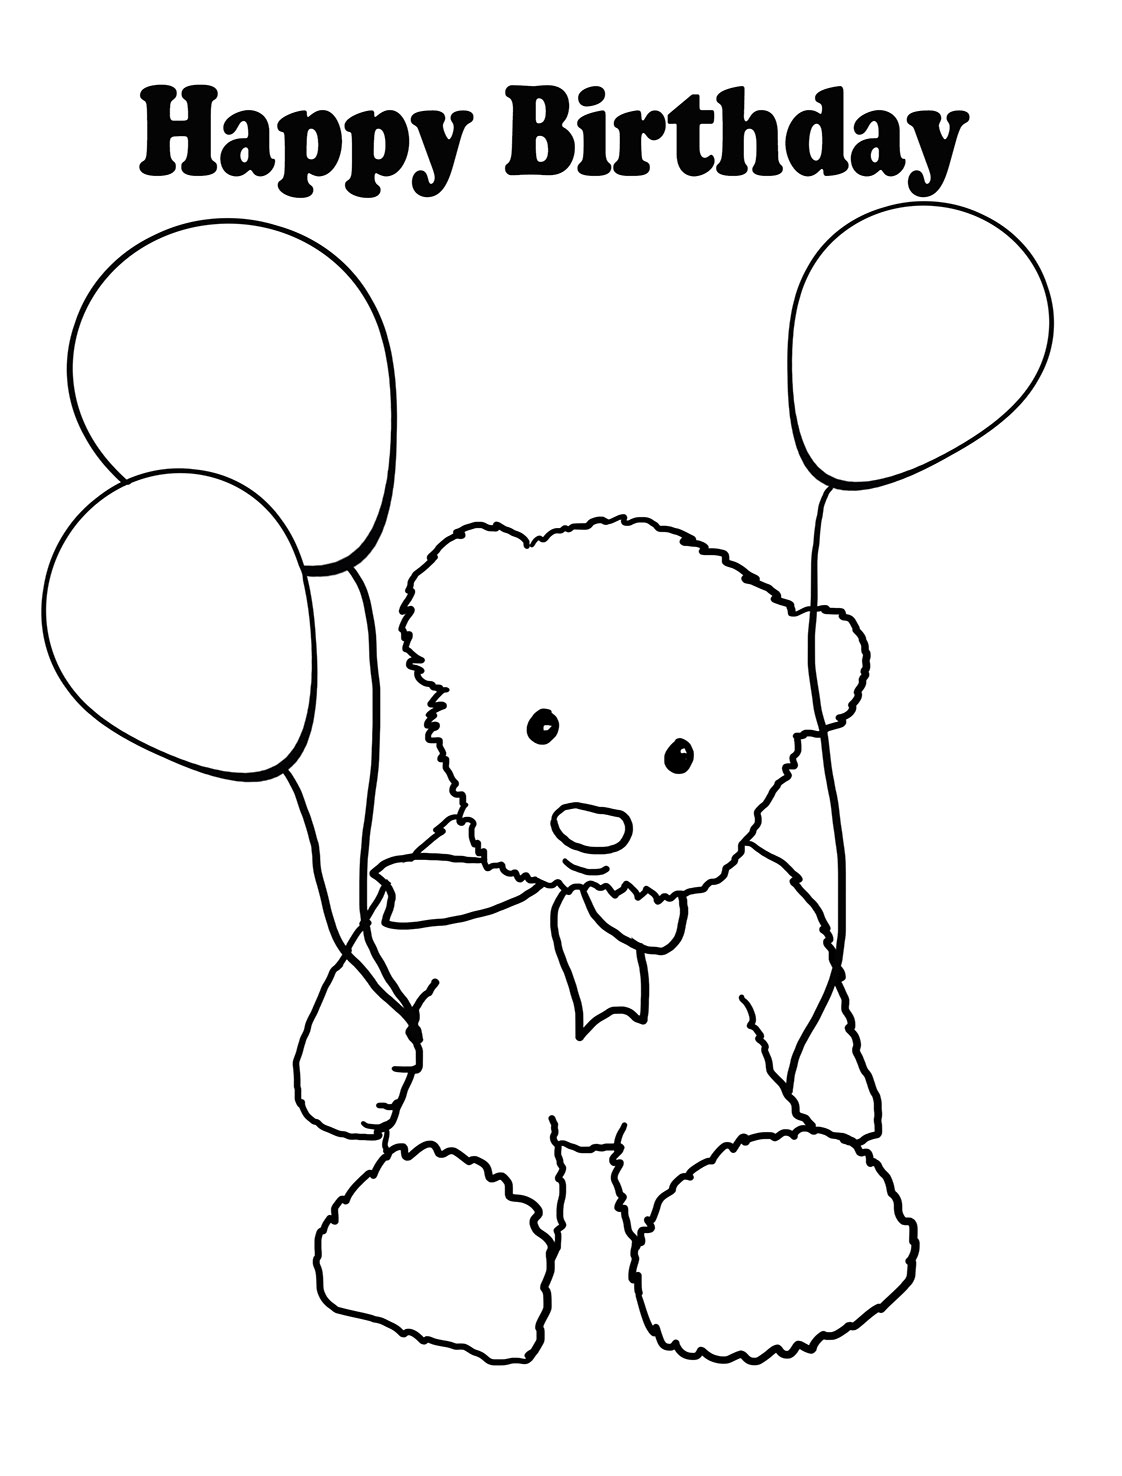 Balloon Coloring Pages - Best Coloring Pages For Kids